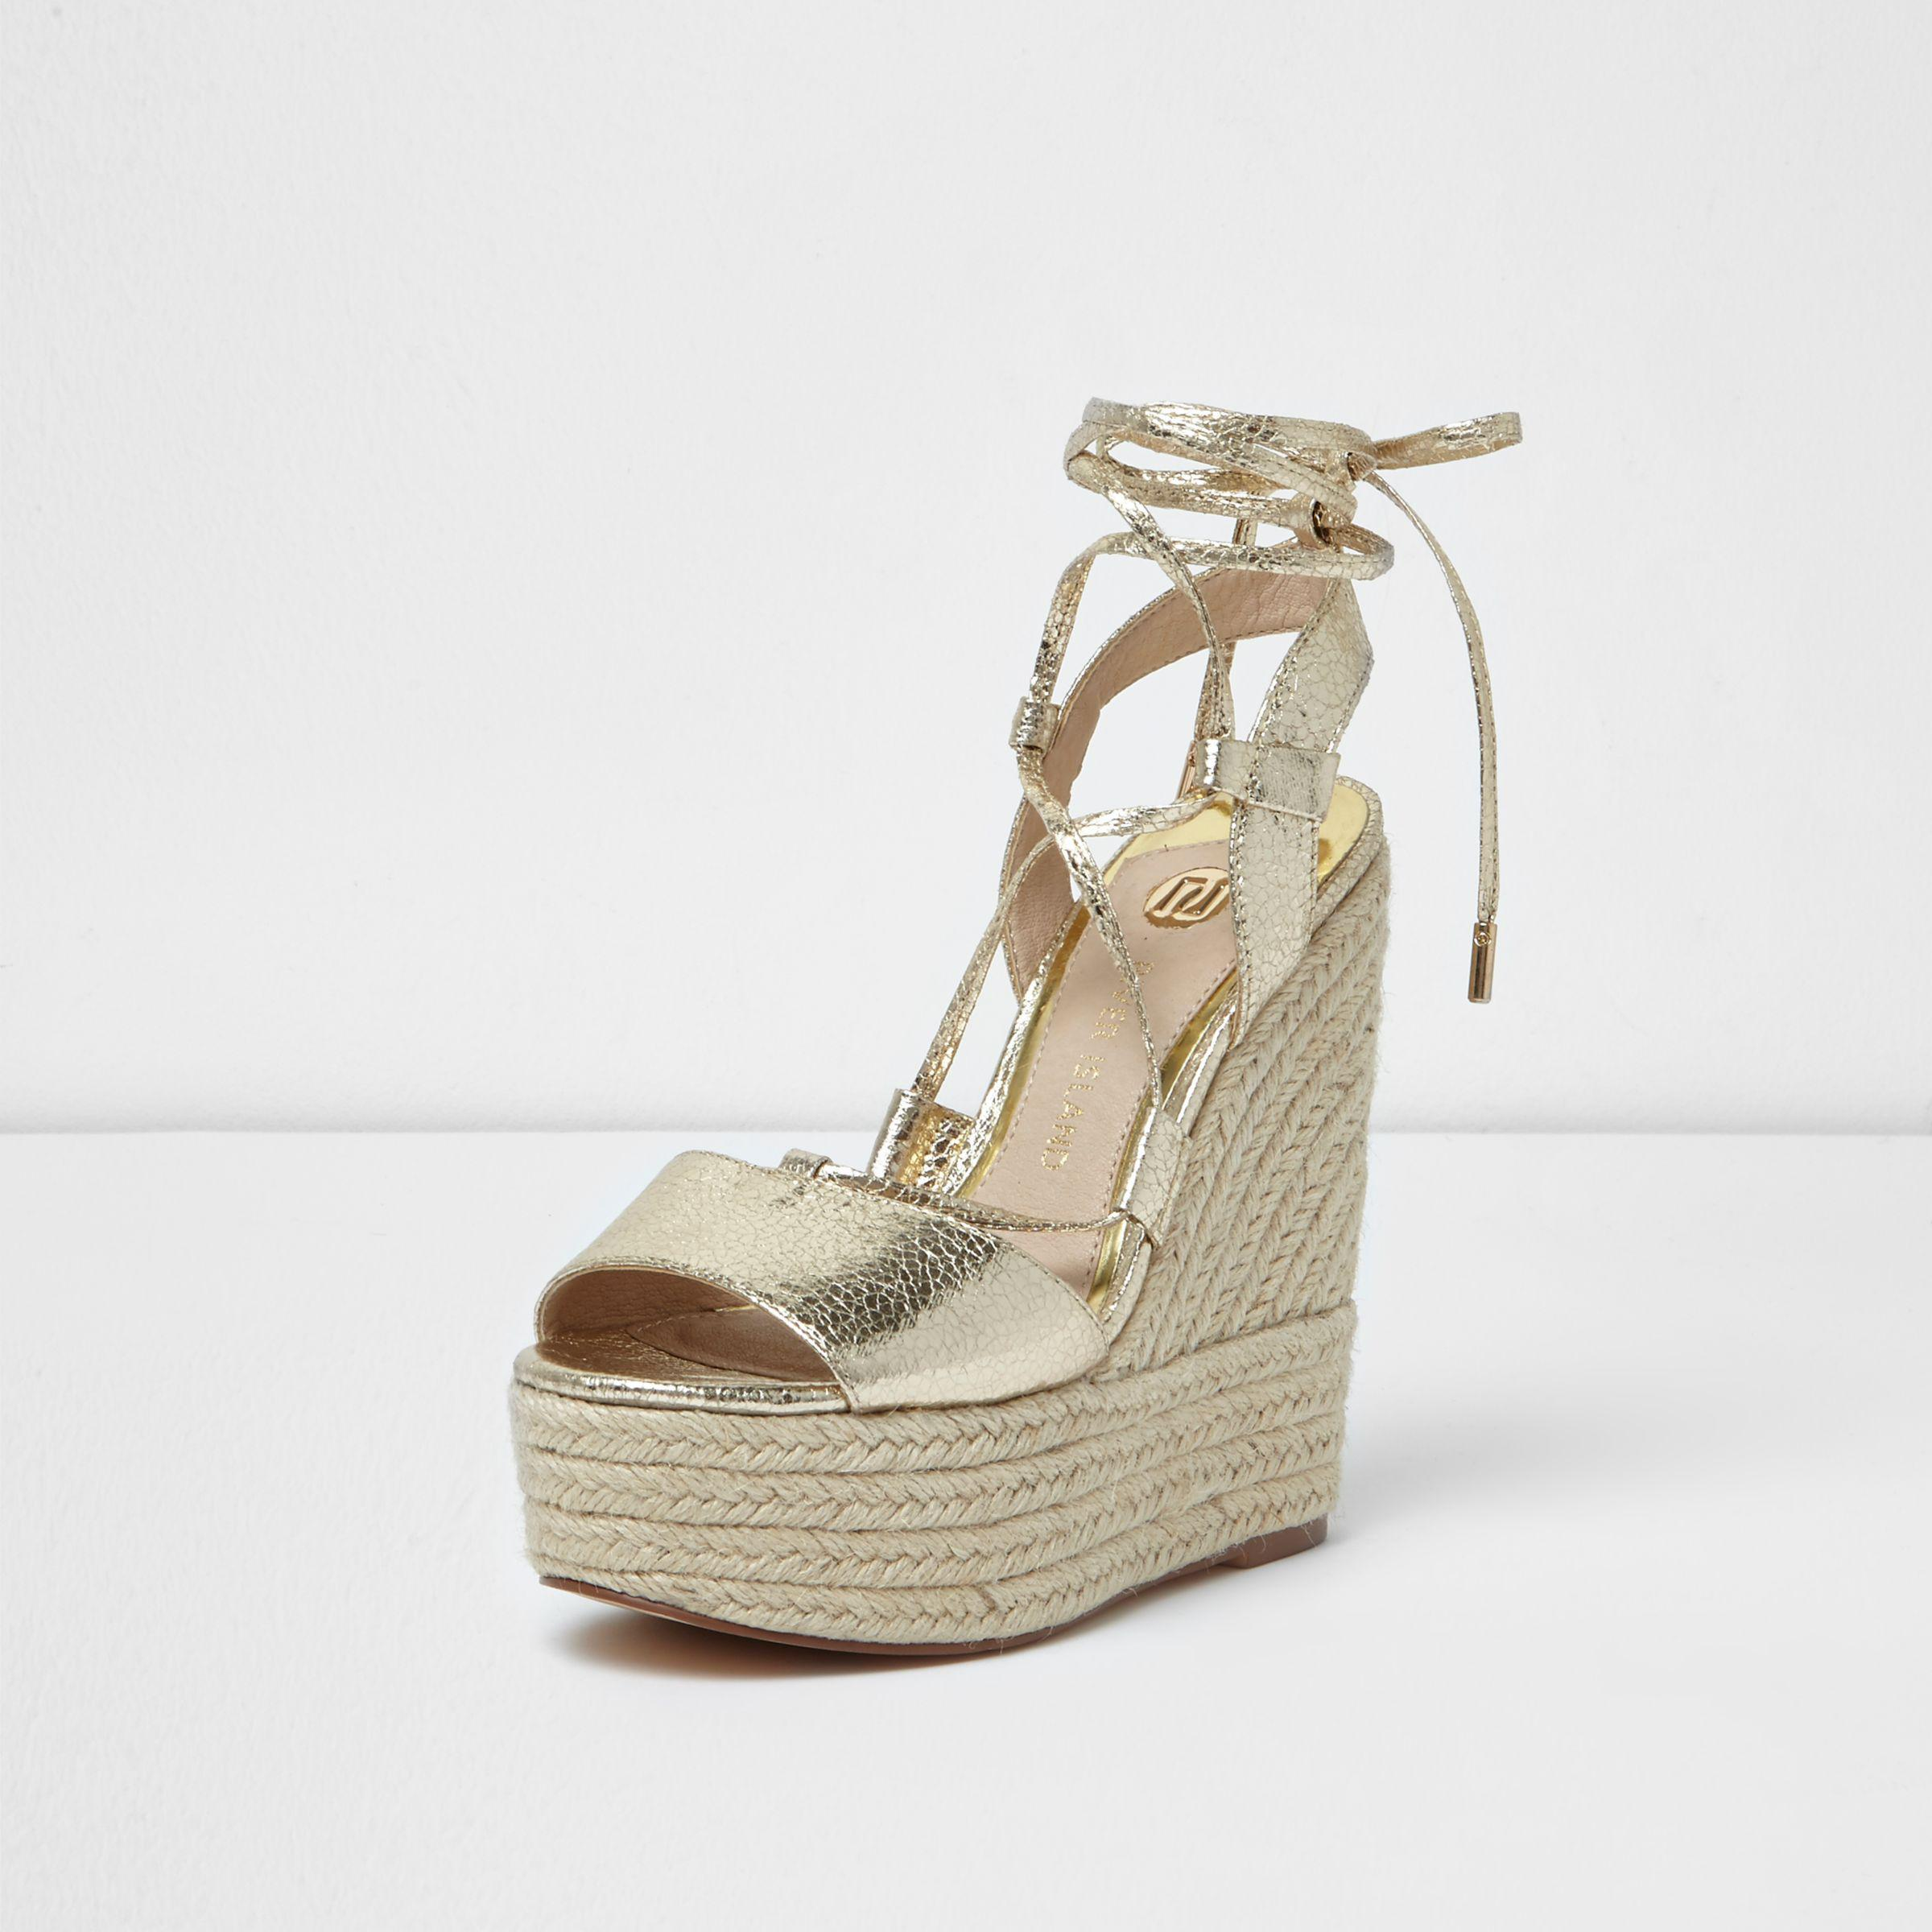 fc58cea7fe6 Lyst - River Island Gold Wide Fit Tie Espadrille Platform Wedges in ...